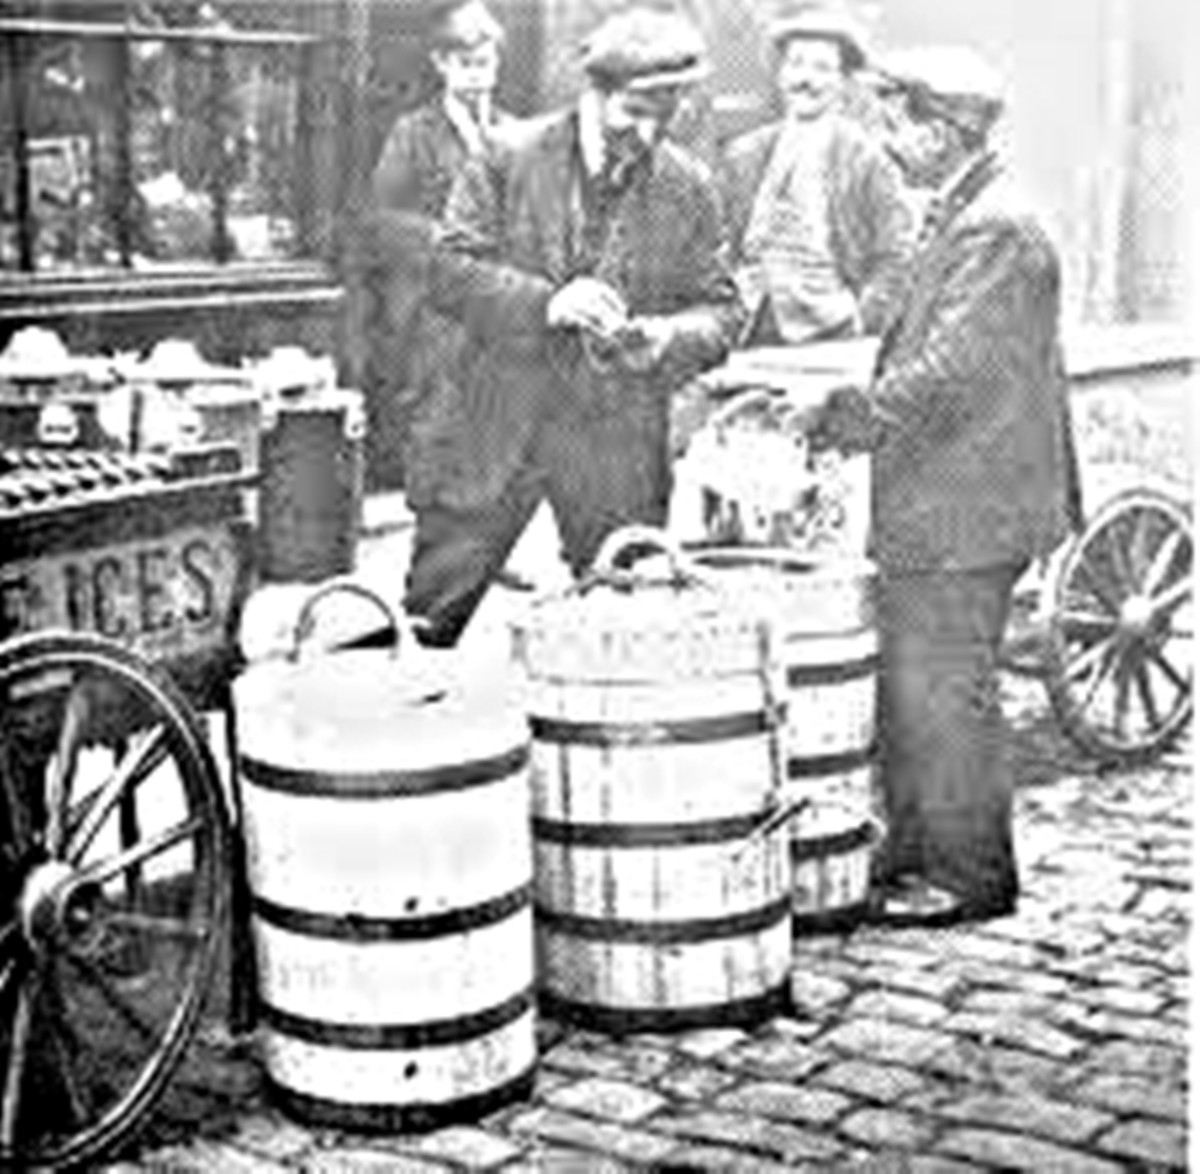 Selling ice cream in the streets from barrels on a cart.